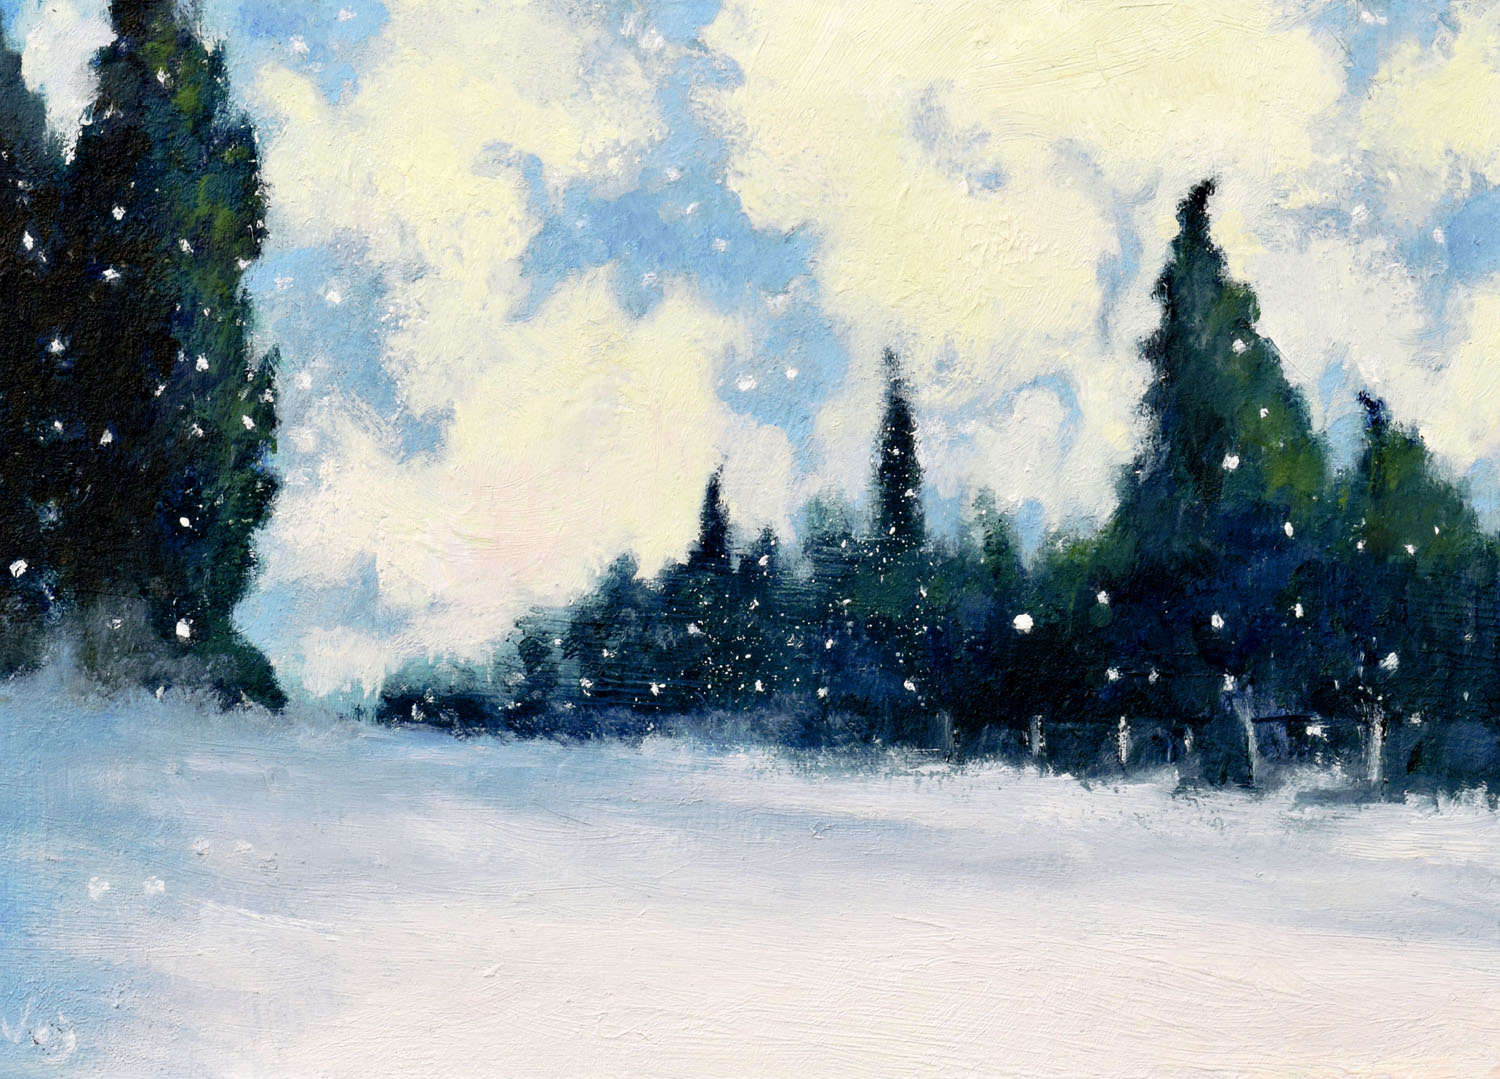 Cypresses and Snowflakes by John O'Grady | A magical snow scene with swirly clouds and tall cypresses